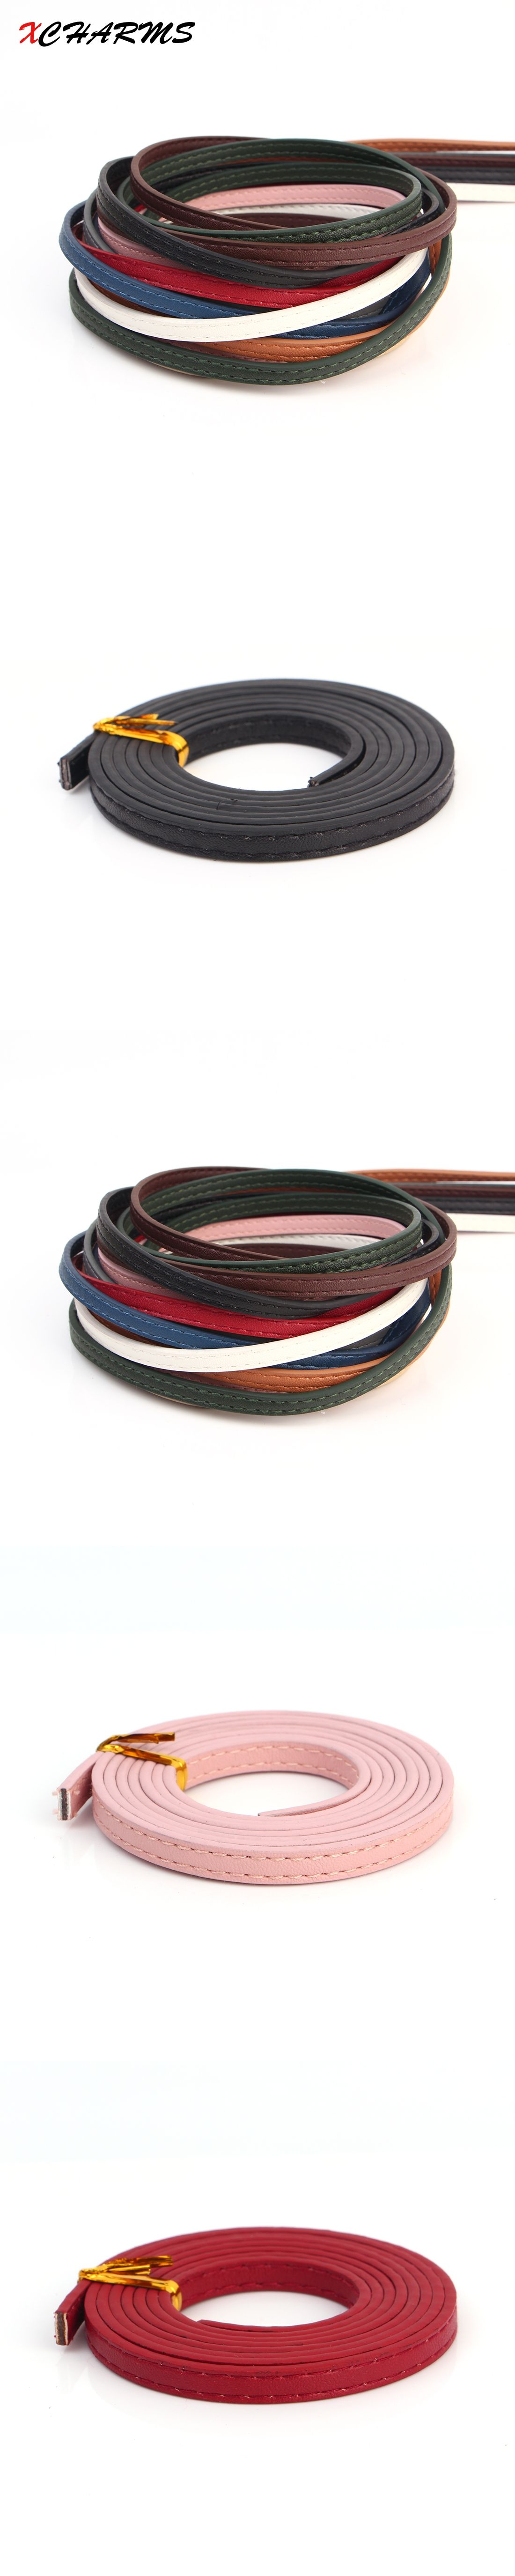 Xcharms mmleather cord ropefish ridge line accessories parts